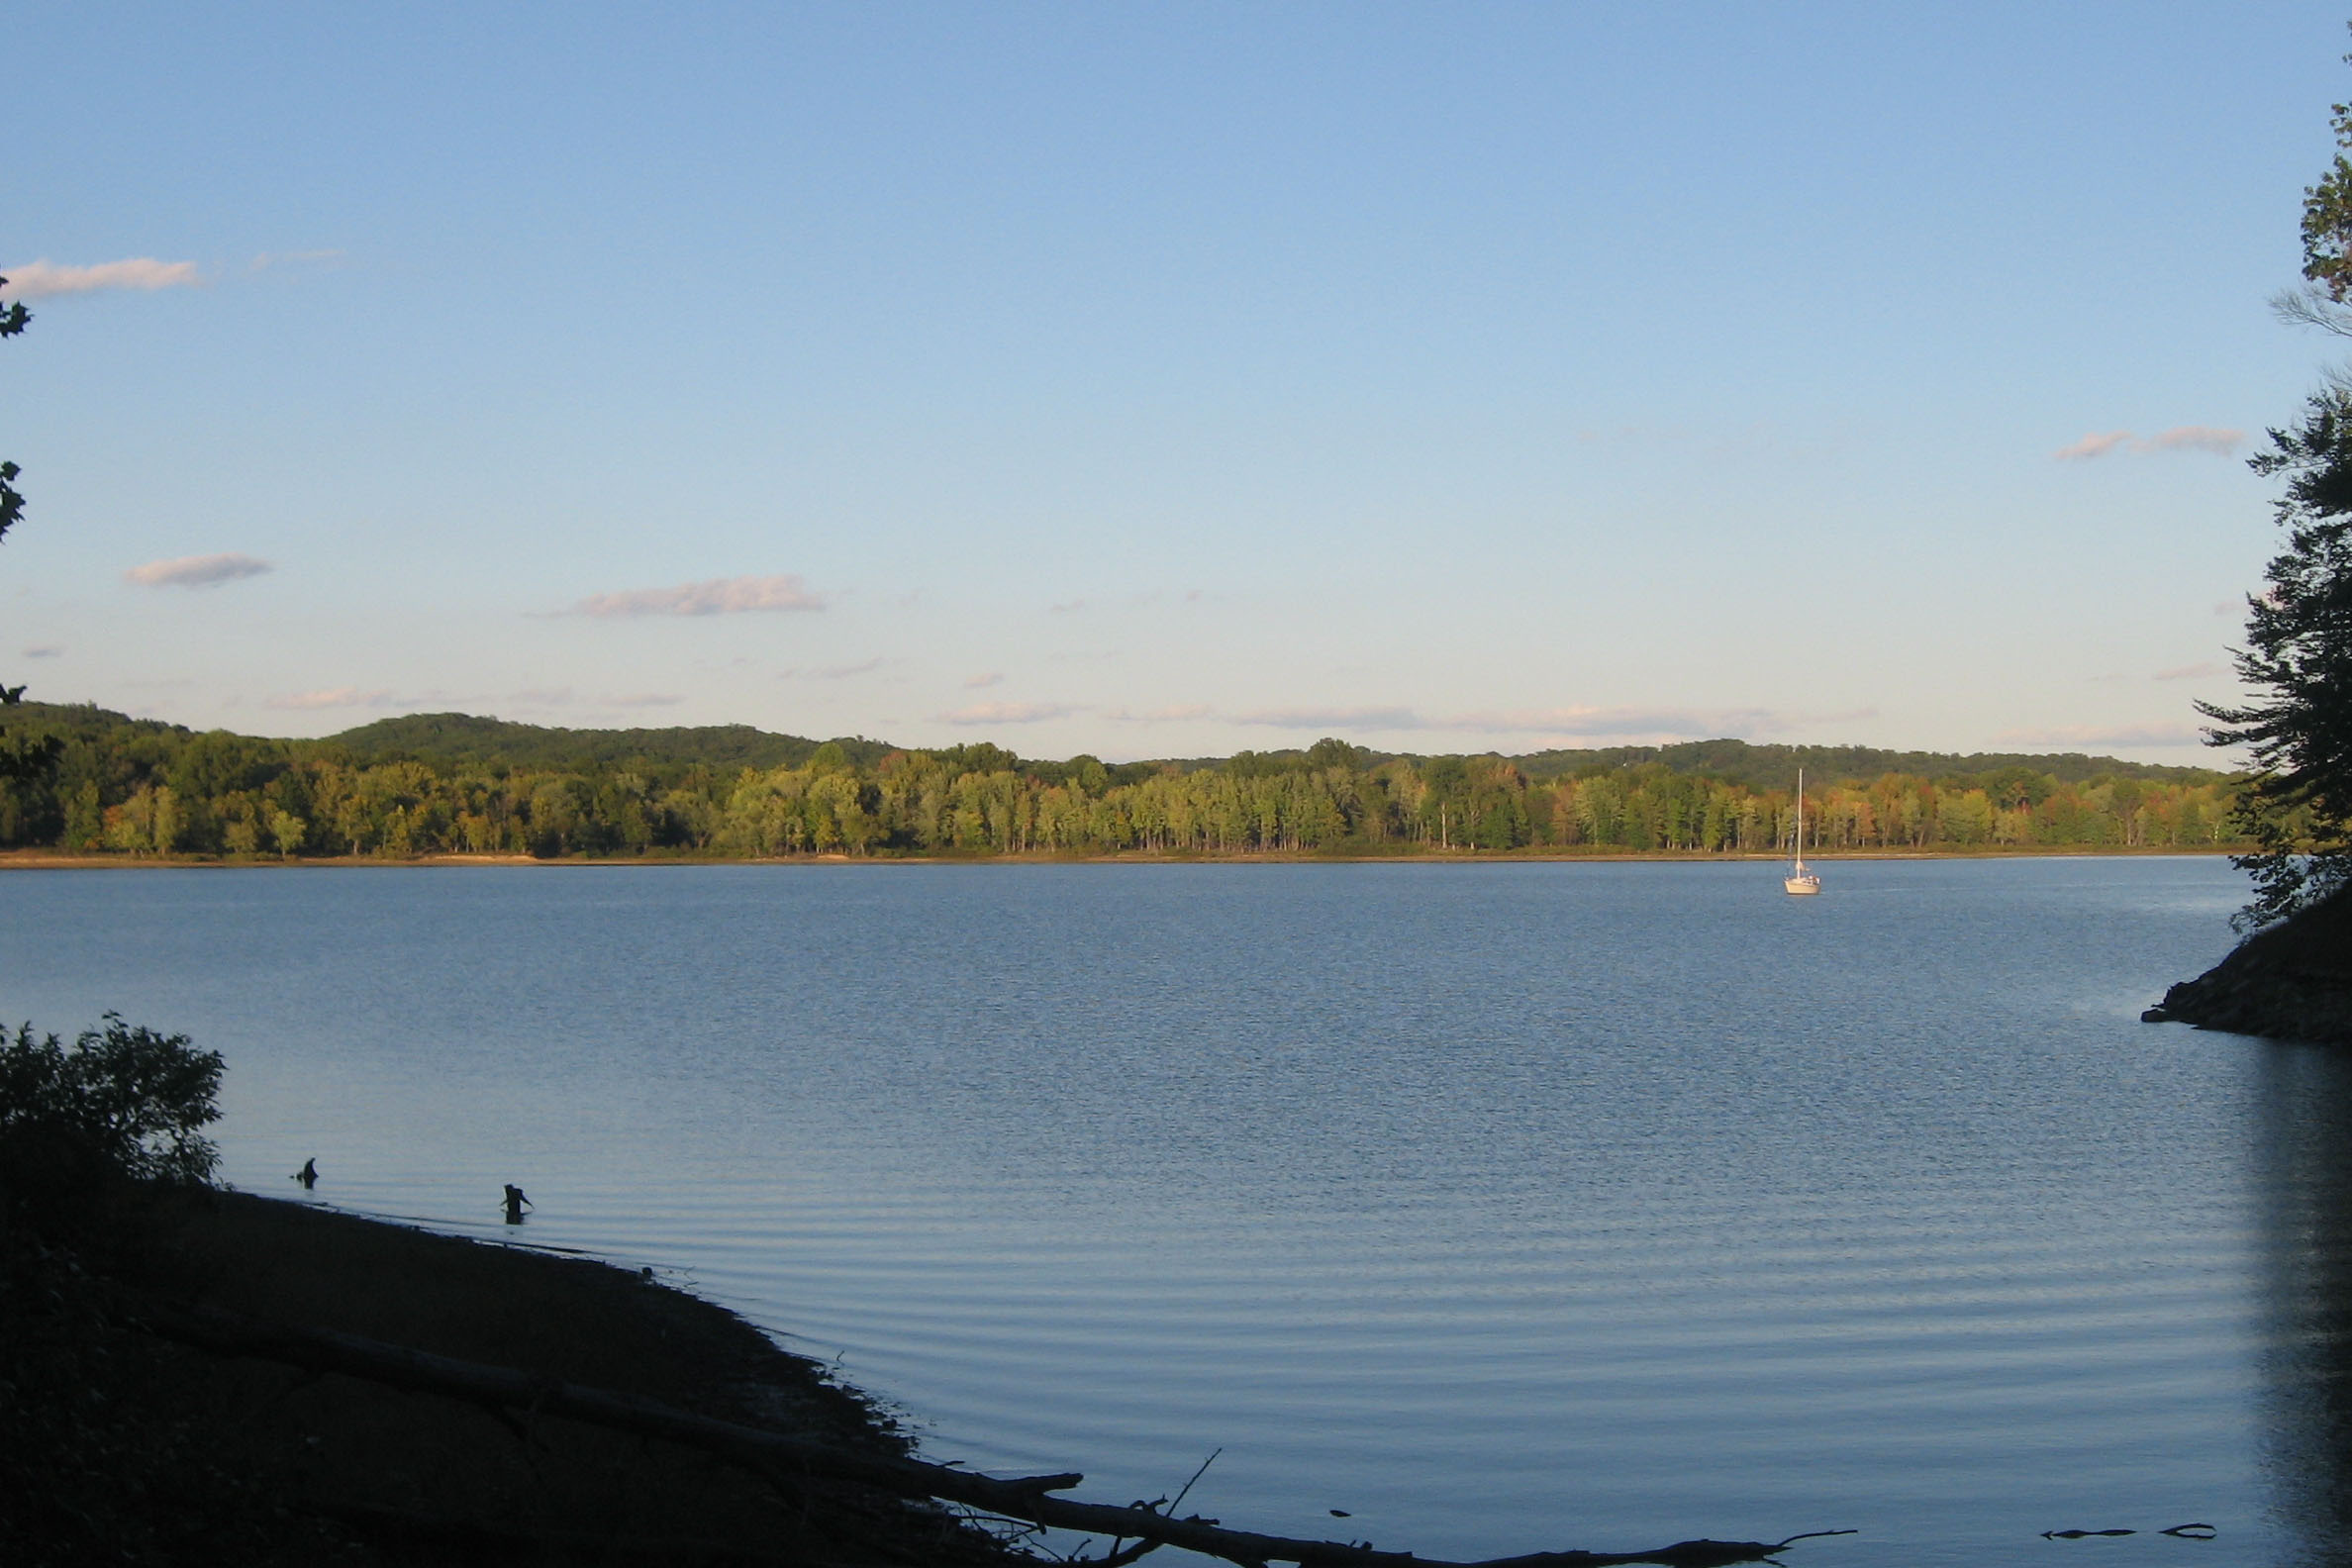 Lake_Monroe_from_Clear_Creek_TownshipCROP.jpg